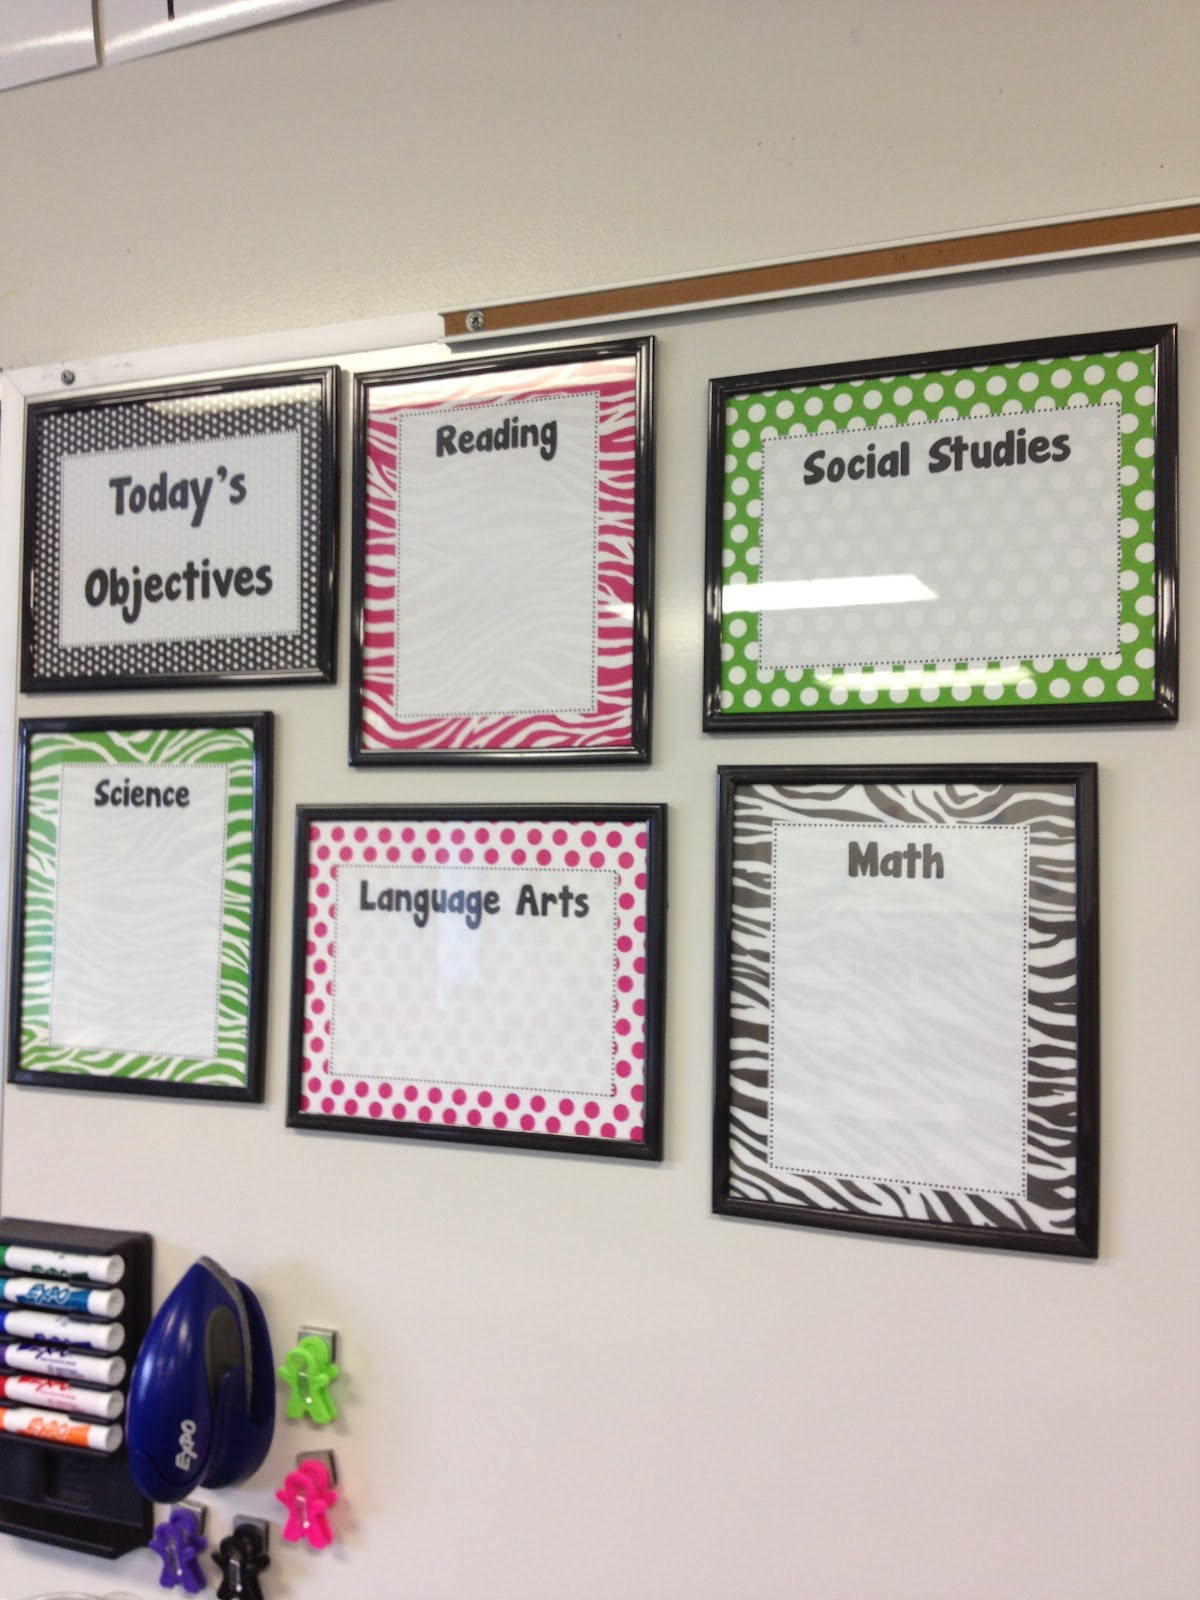 Classroom Whiteboard Decoration Ideas ~ Welcome to first grade room diy learning target frames